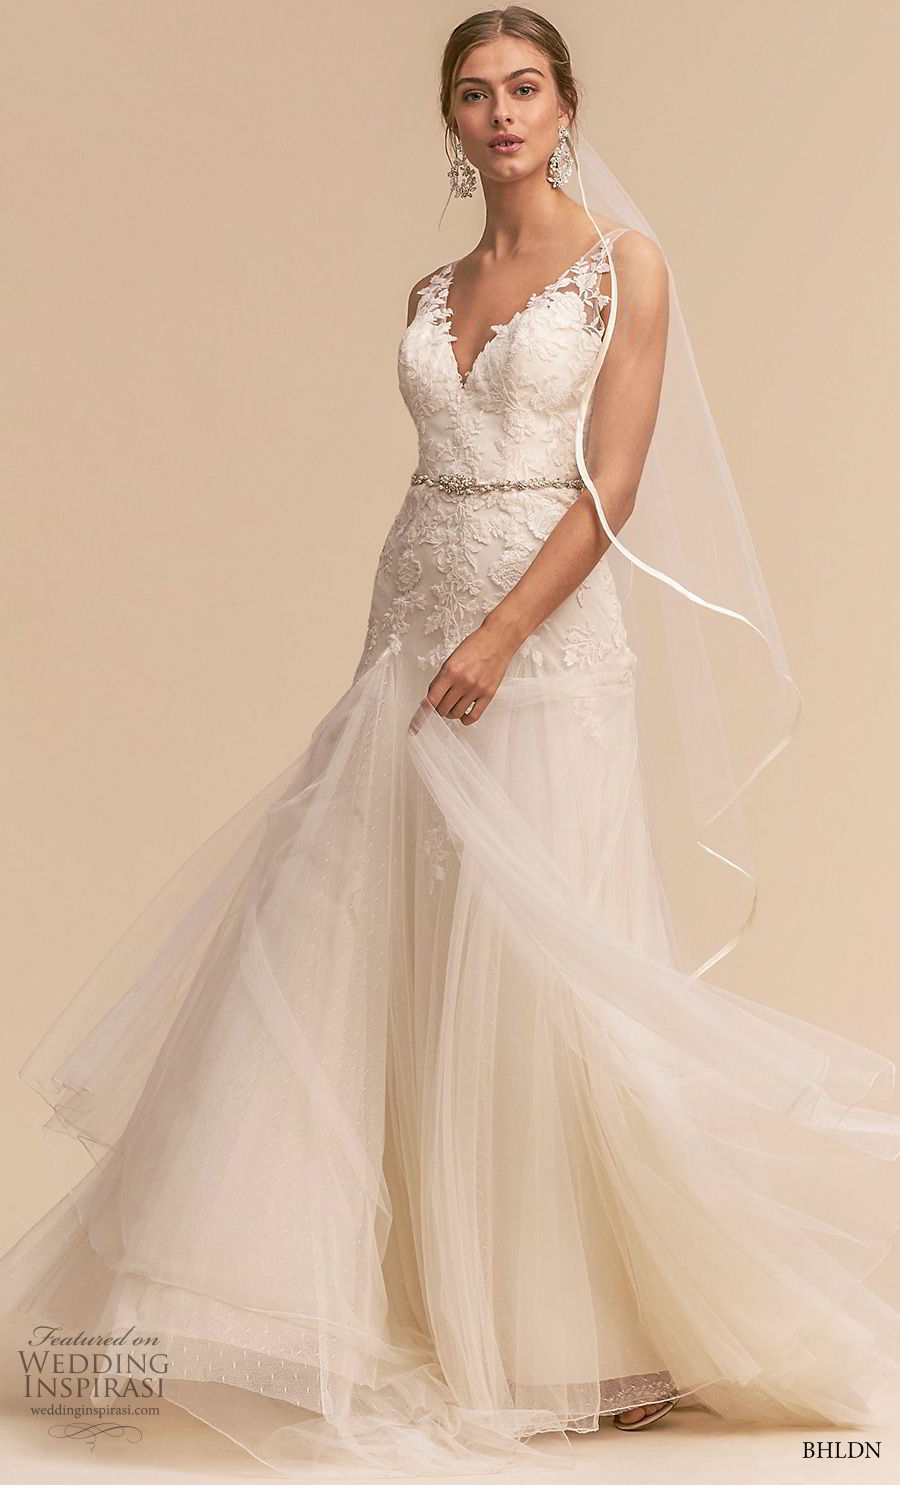 bhldn 2018 whispers bridal sleeveless v neck heavily embellished bodice romantic a line wedding dress v back sweep train (8) mv